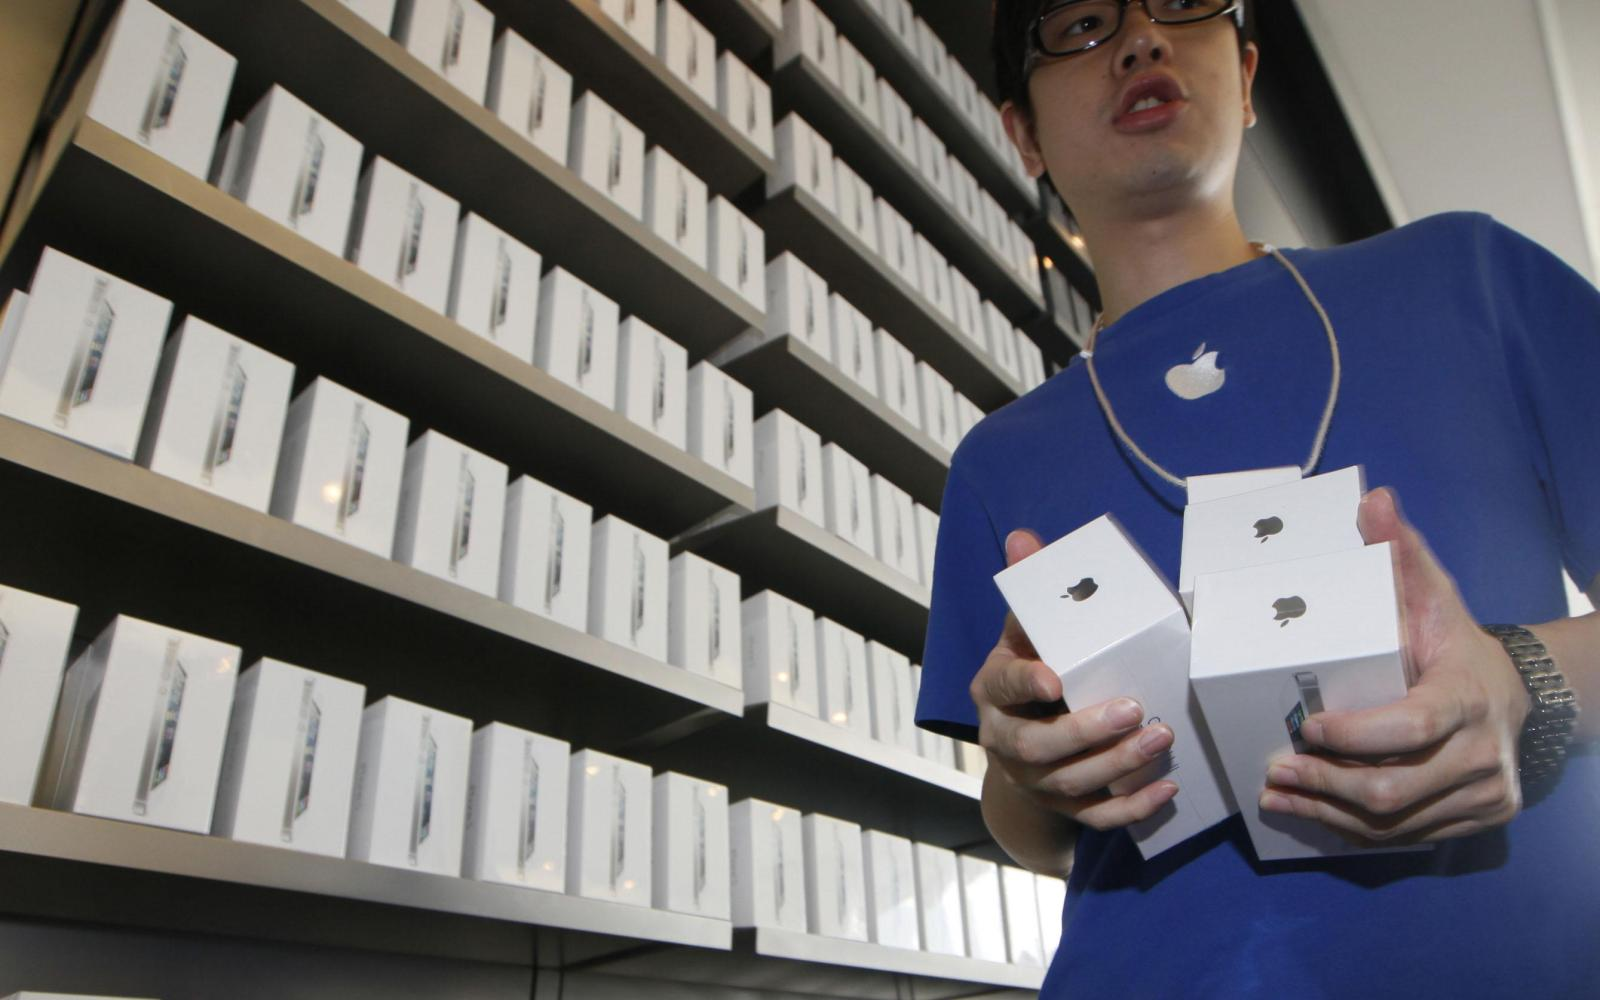 Apple finds some iPhone 5 units have battery problems, opens replacement program